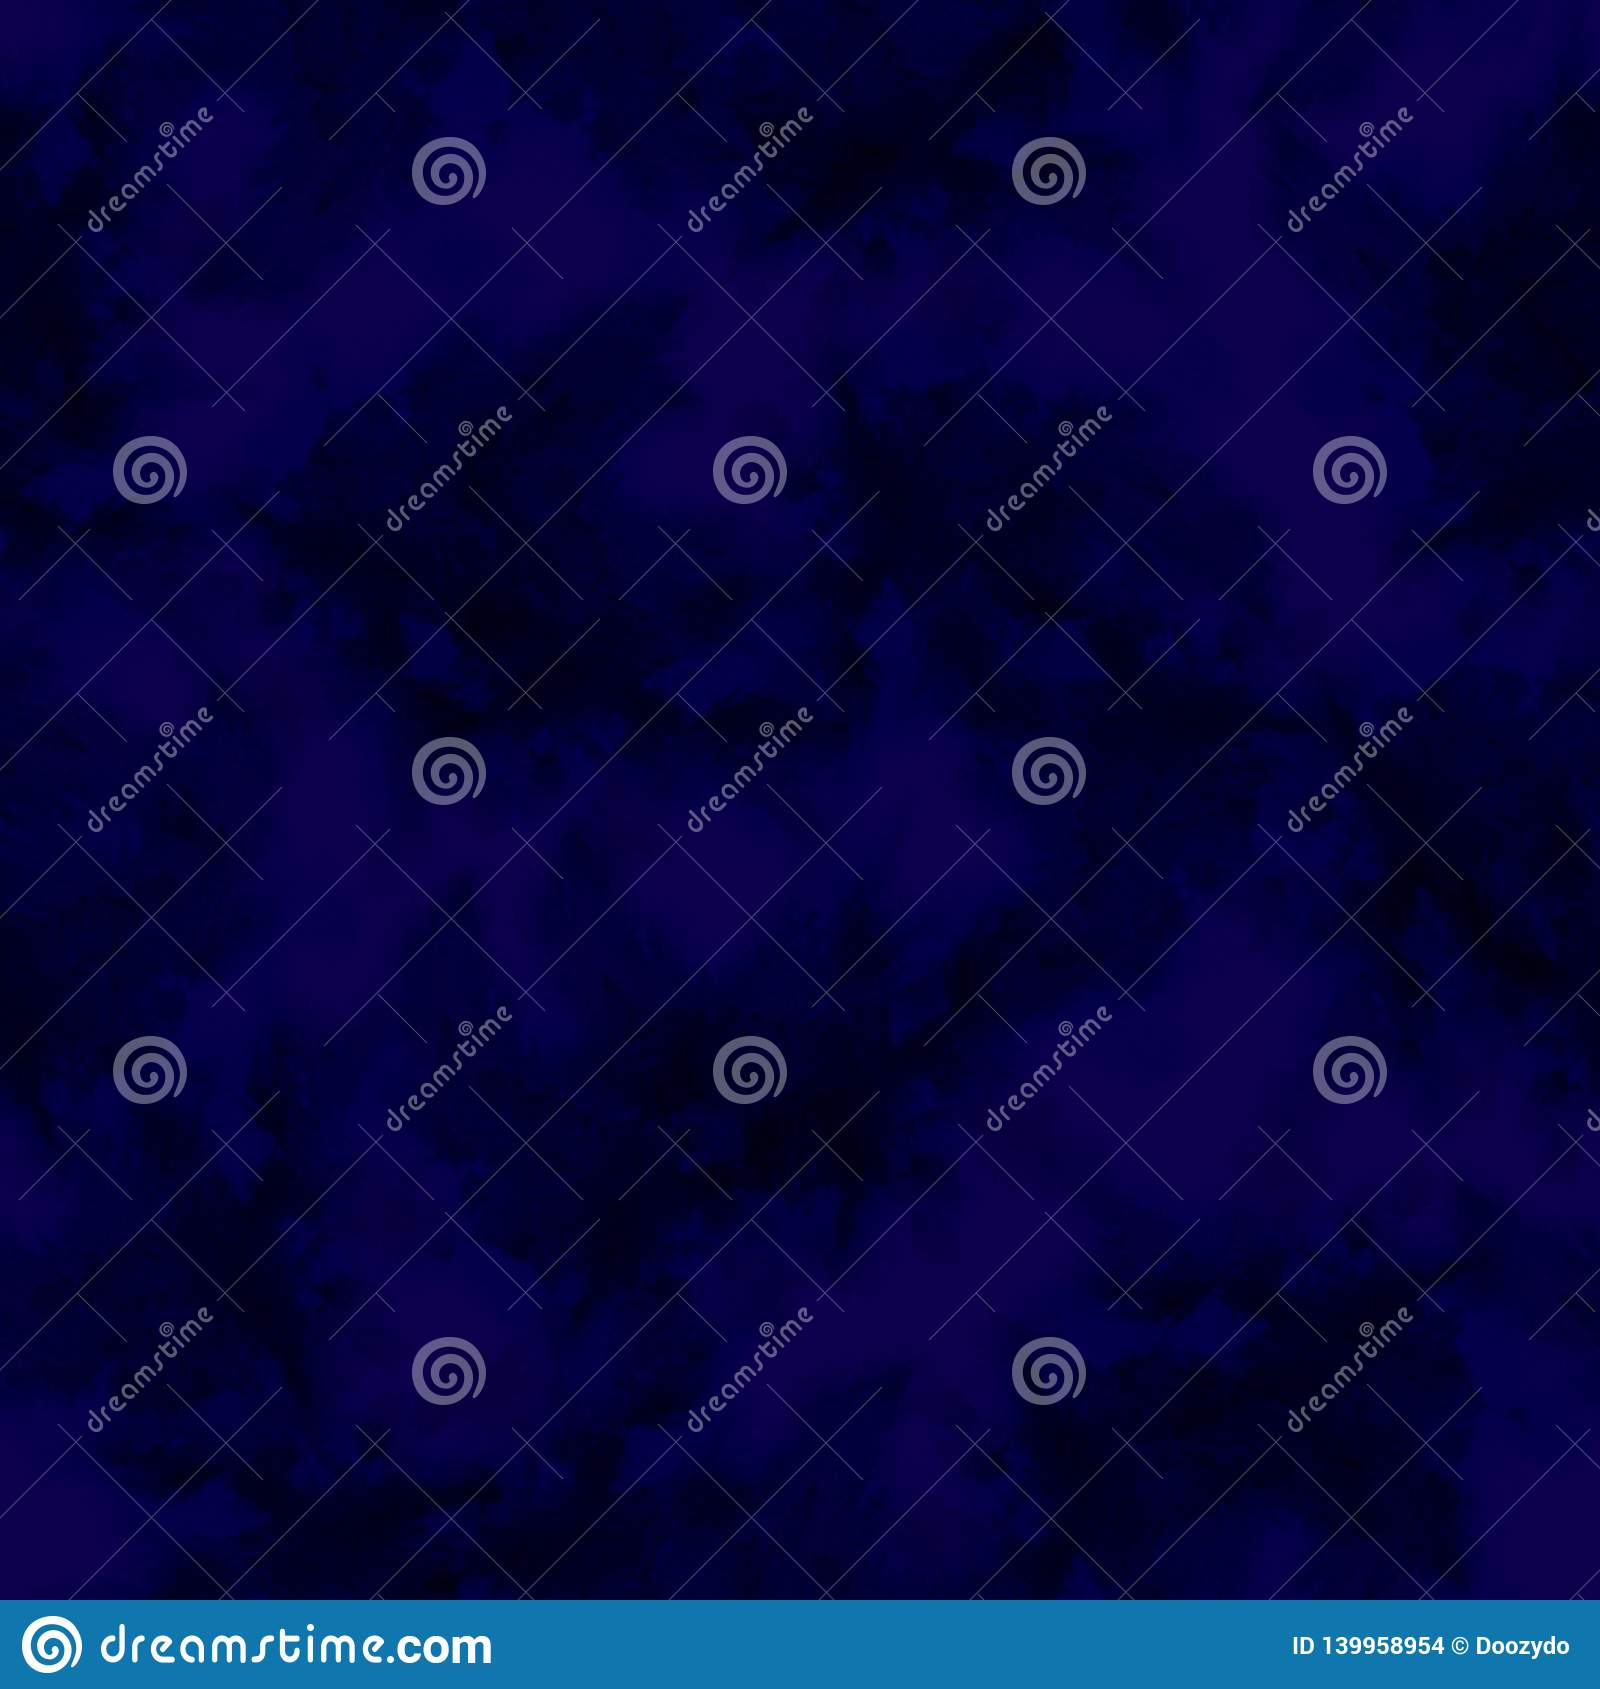 Indigo splashes pattern. Watercolor abstract seamless pattern. Background with scattered indigo splashes and stains. Hand painted